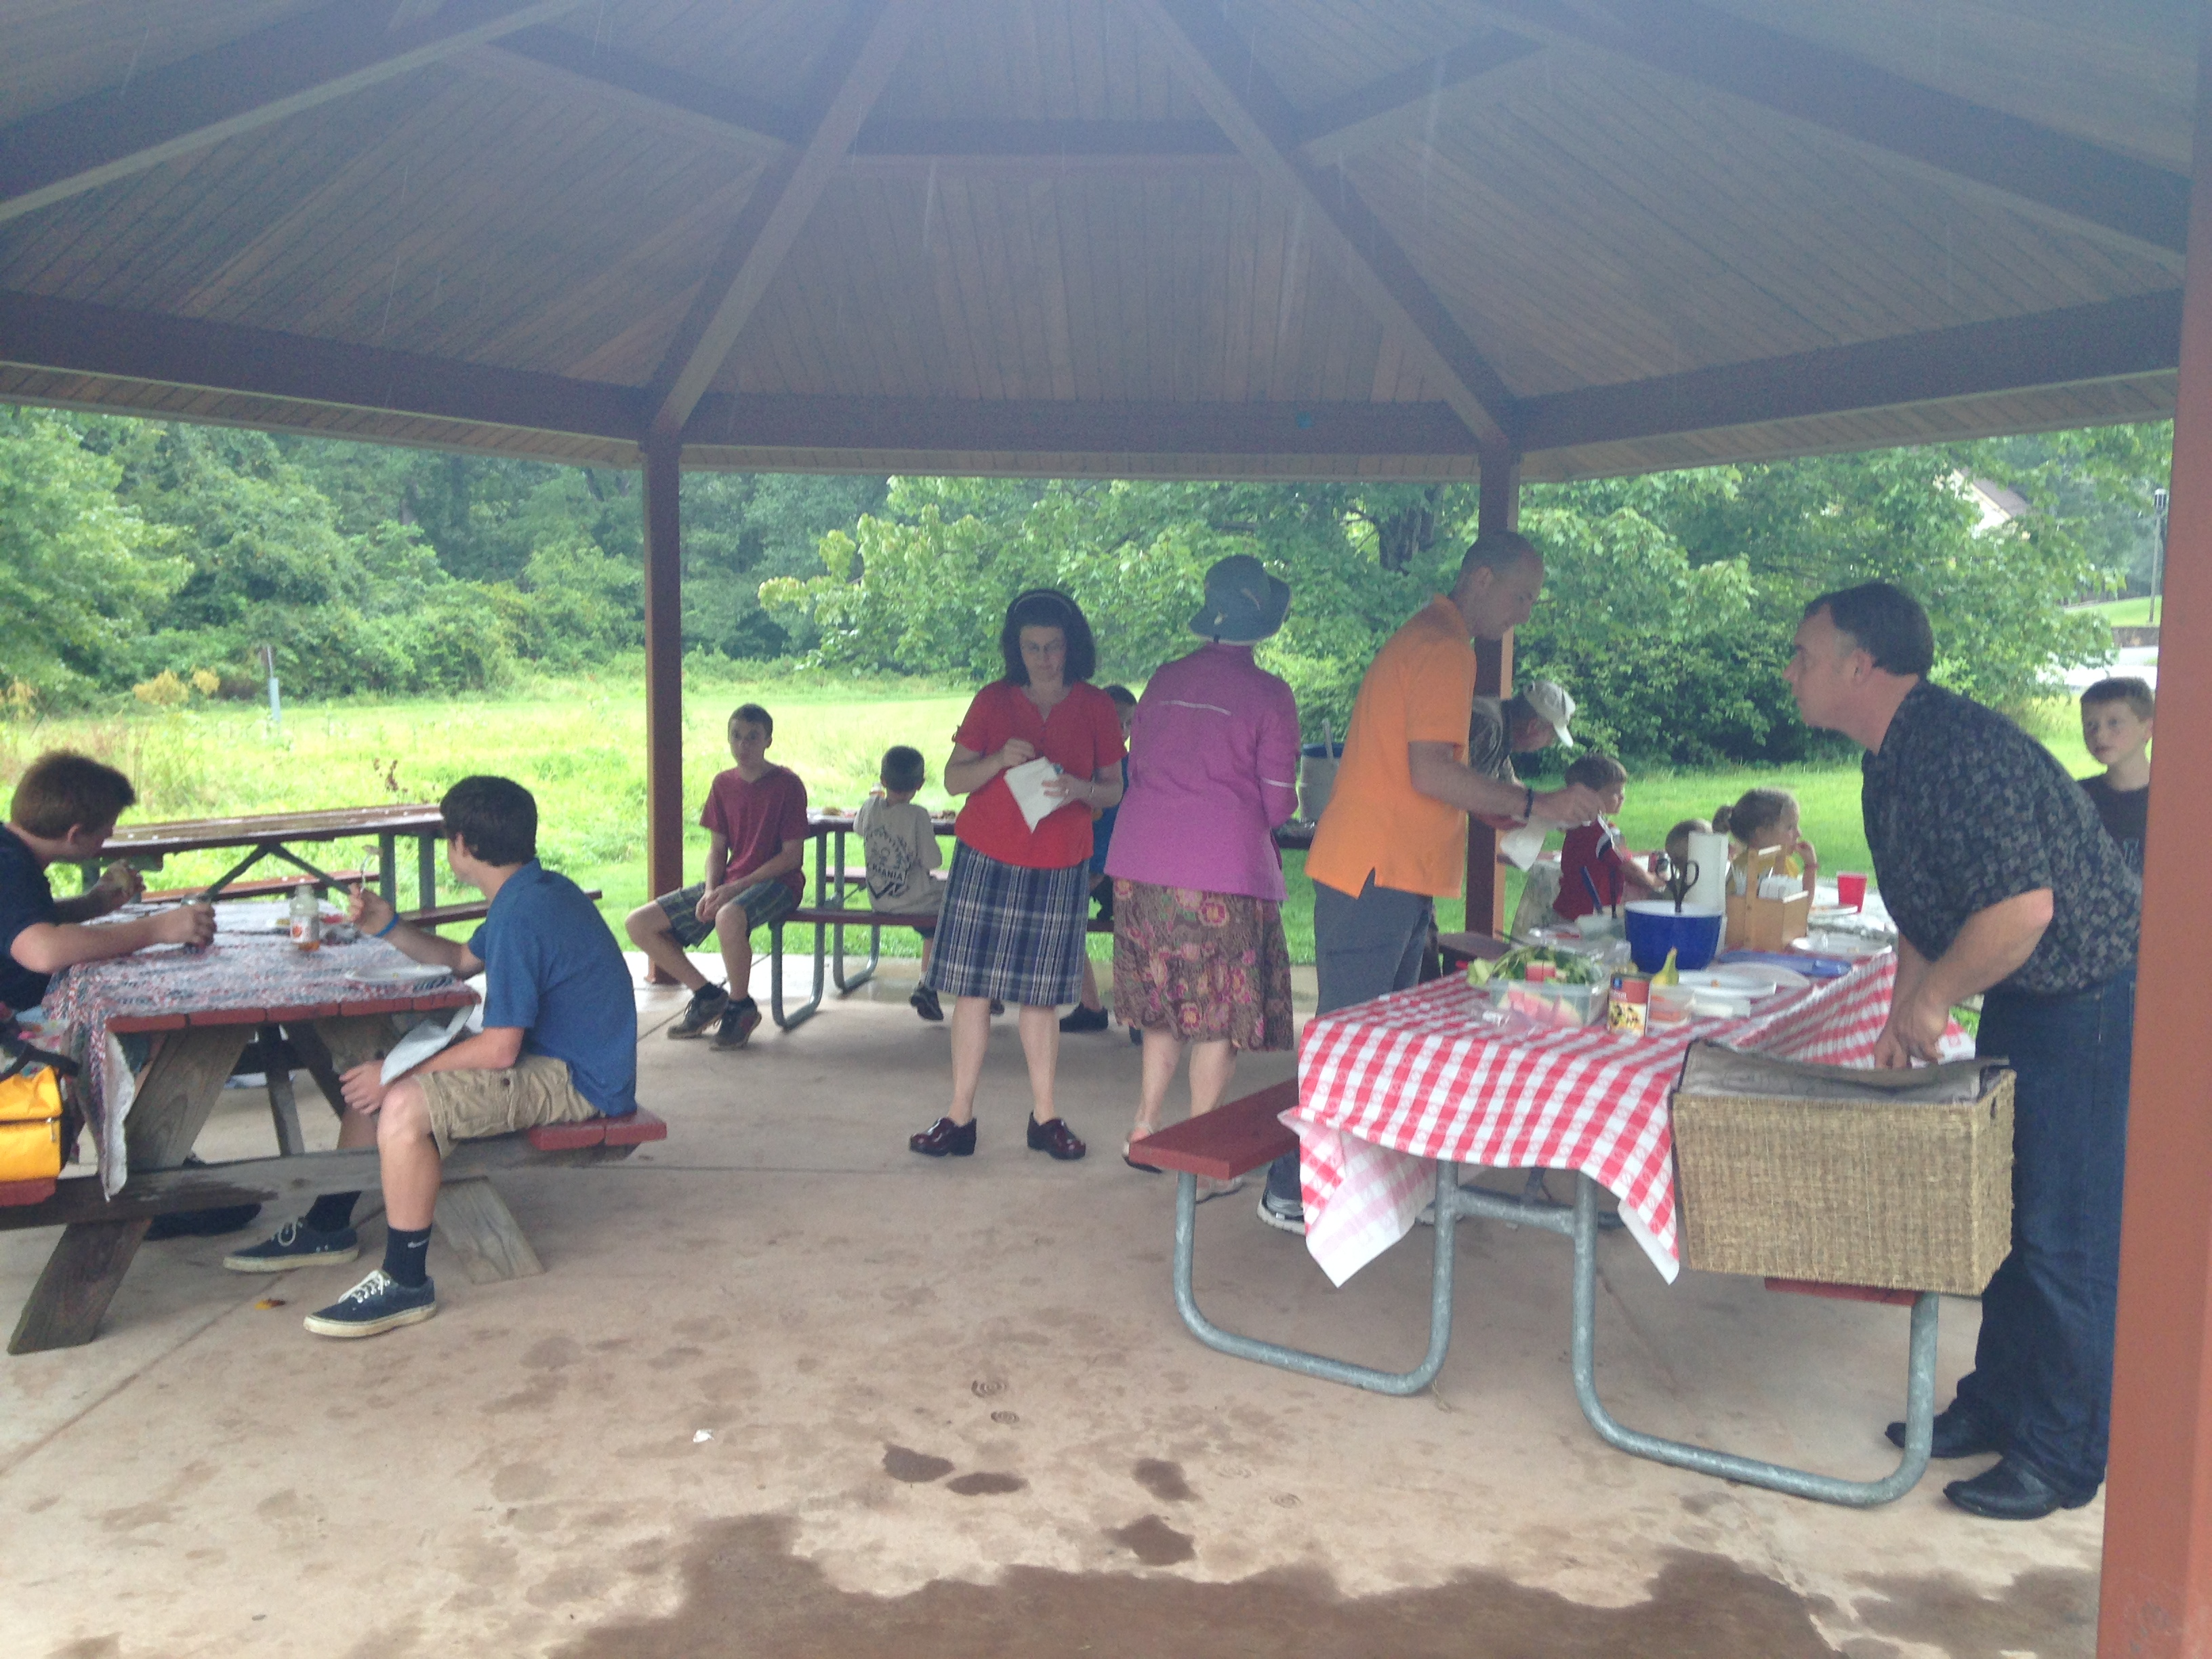 Our picnic under the shelter